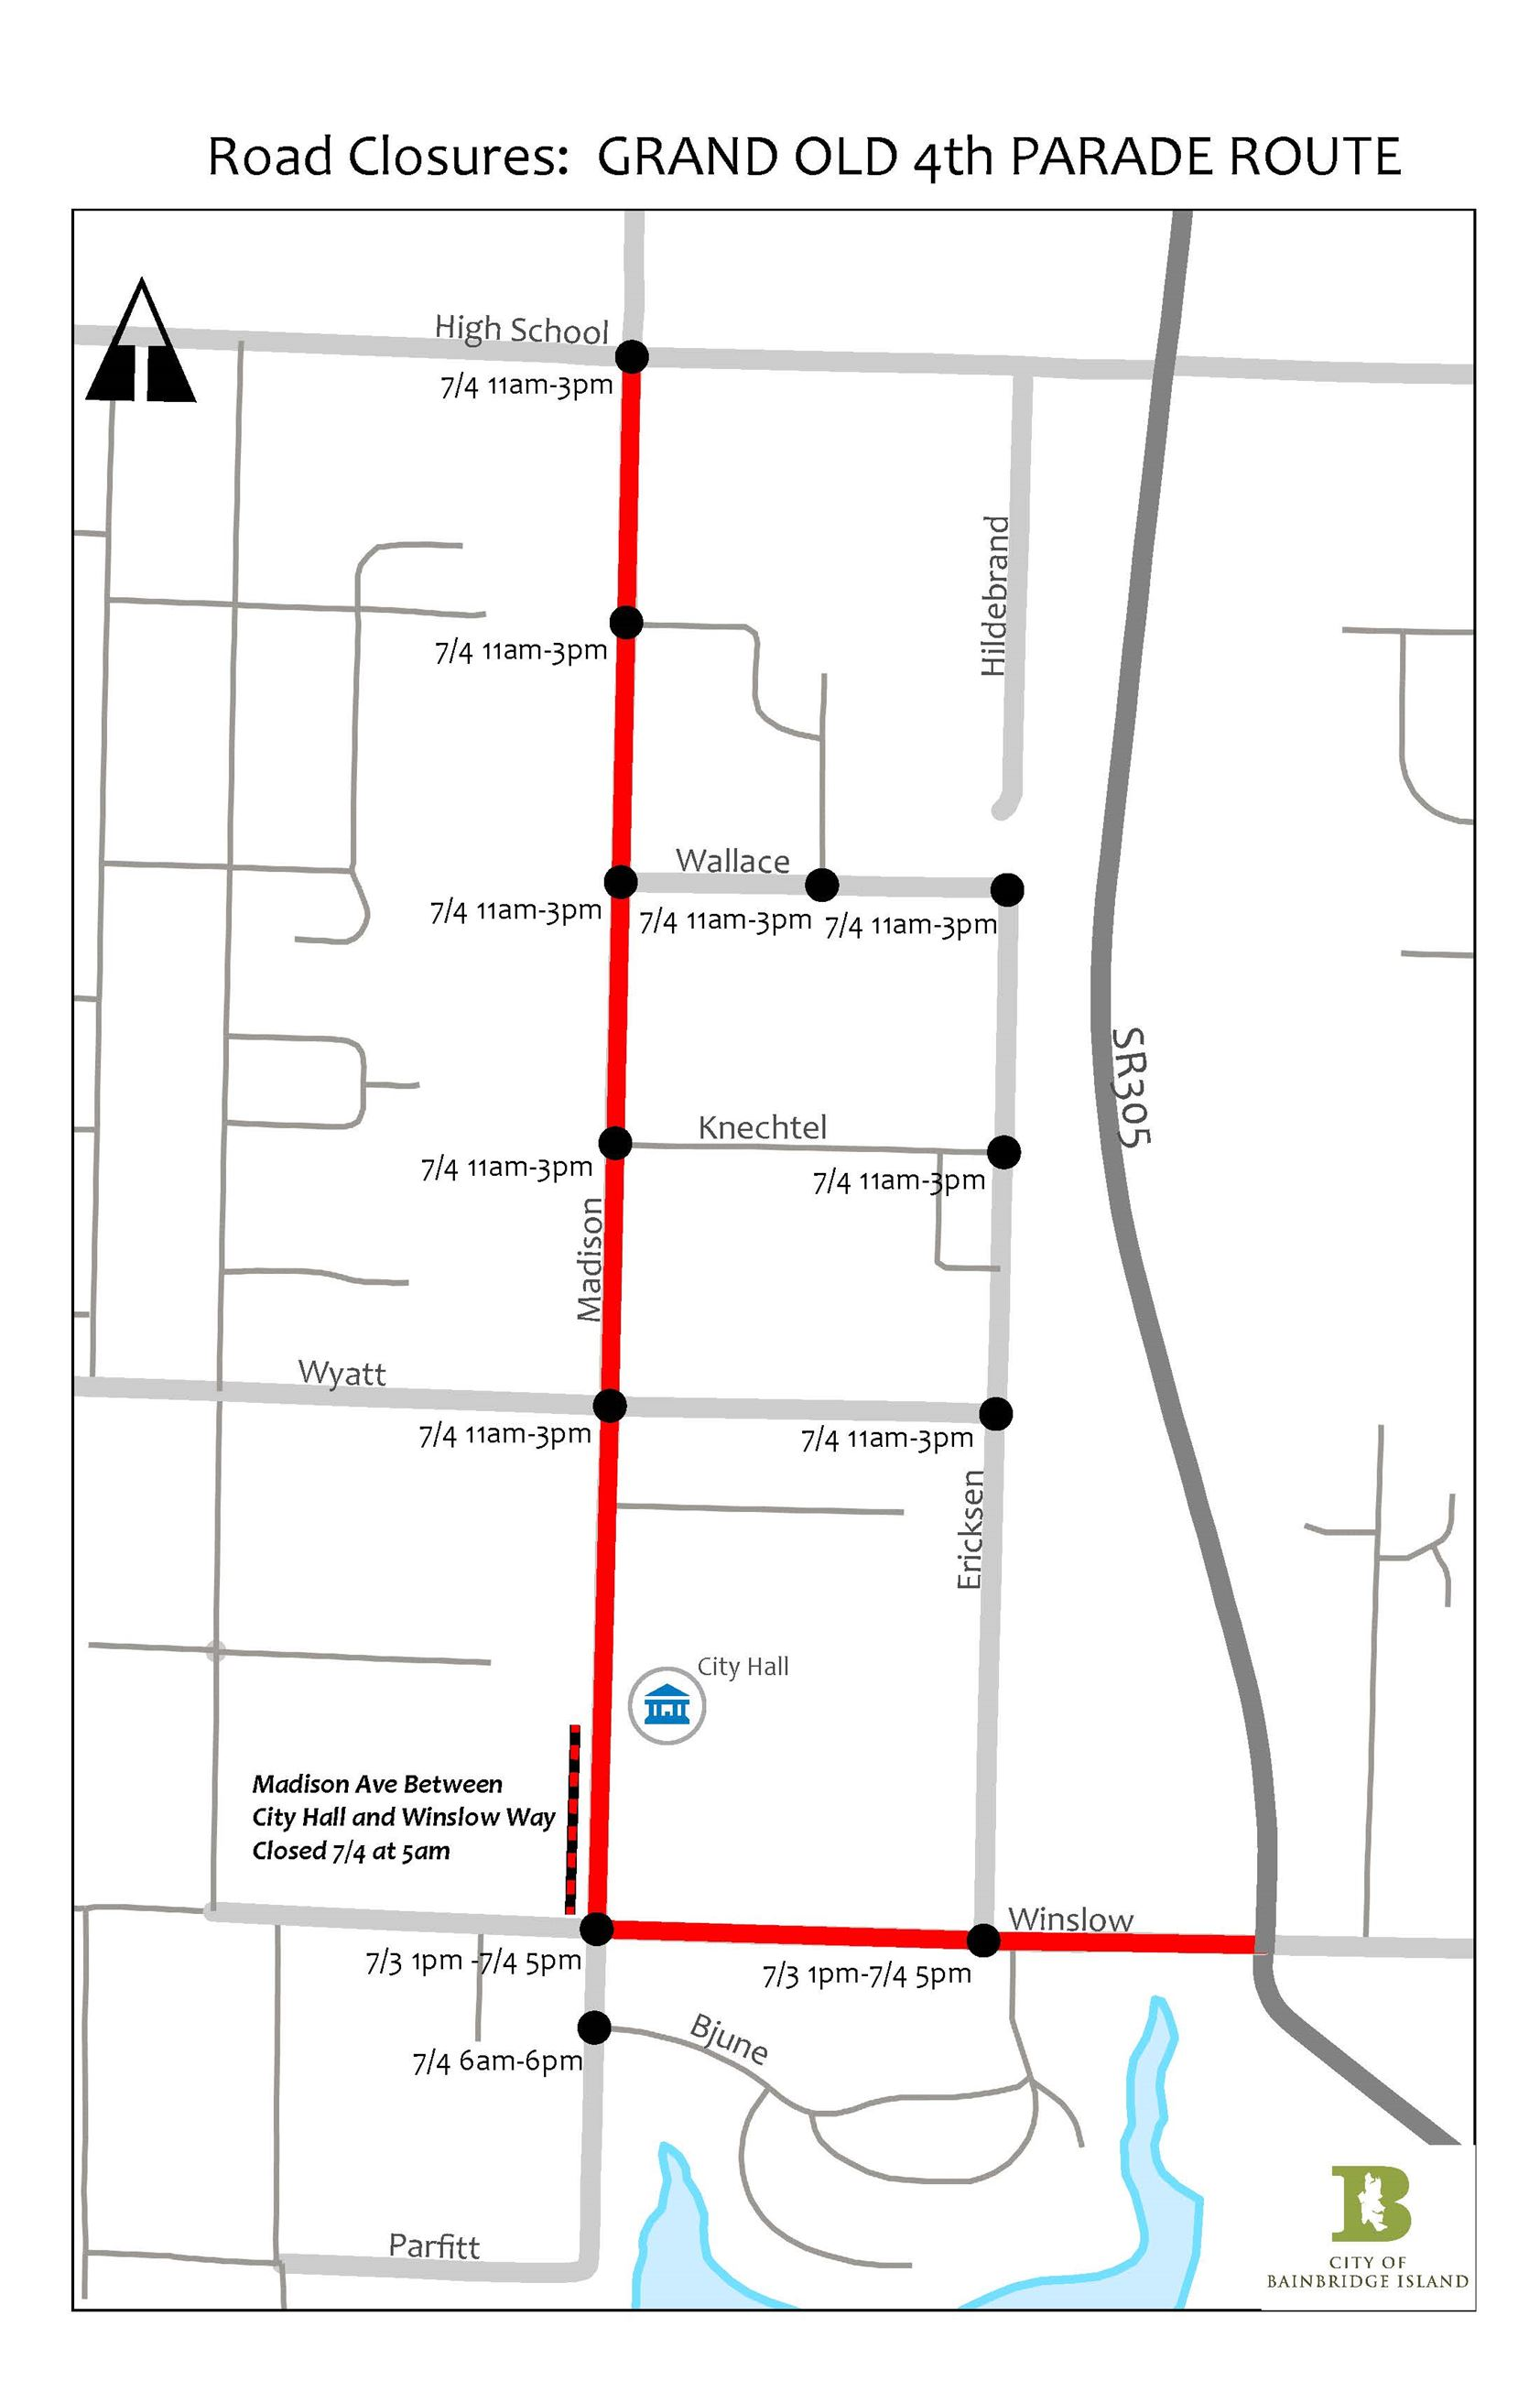 Parade Route and Road Closures 2019